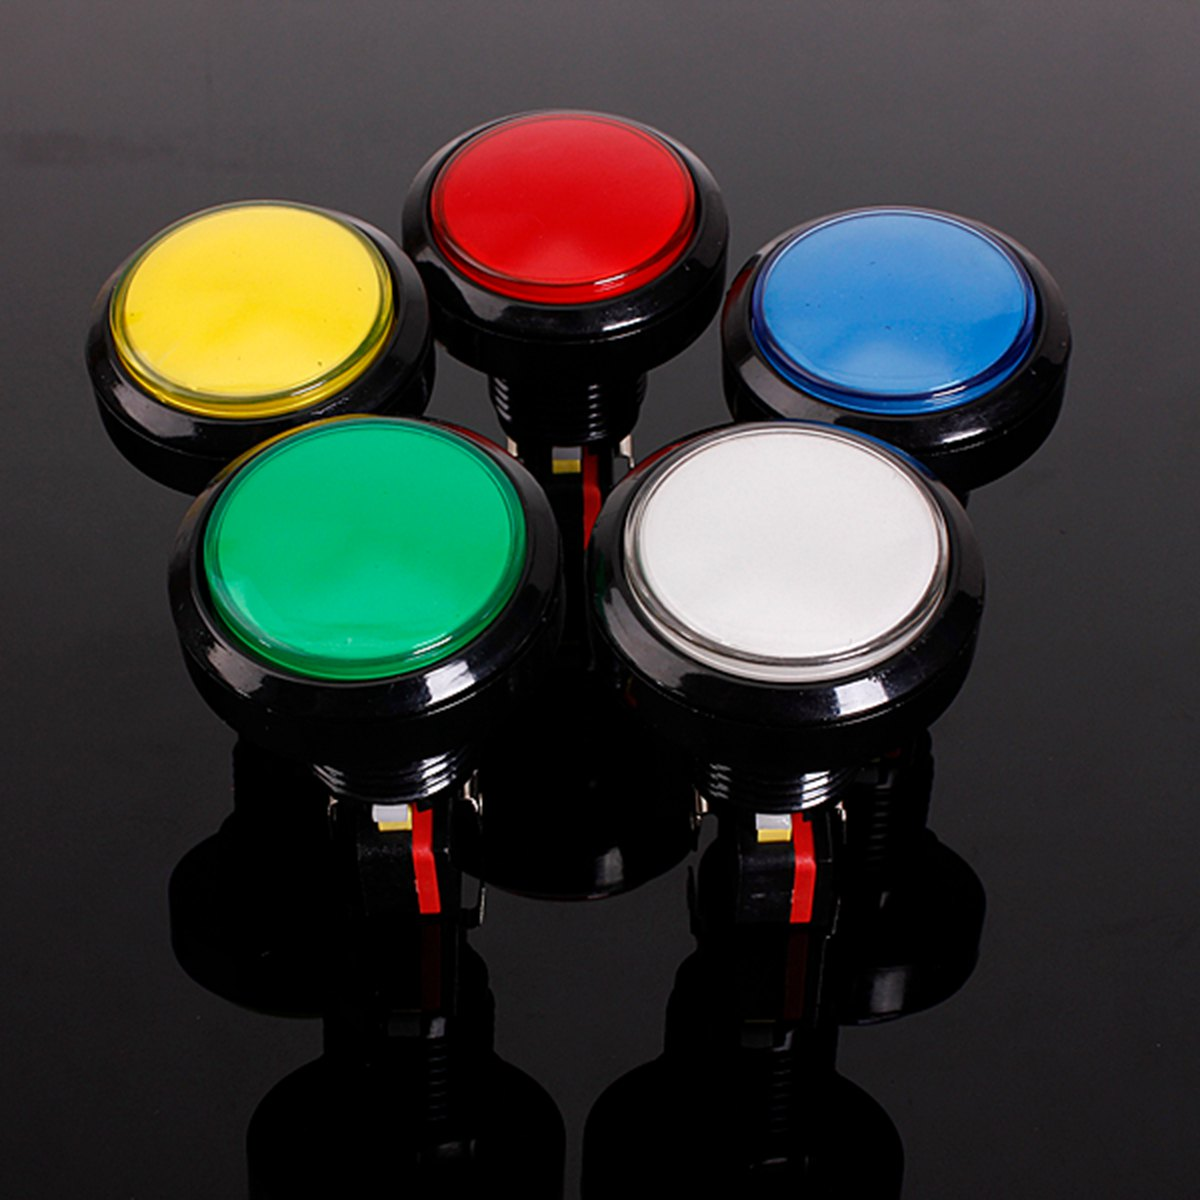 45mm Push Button Arcade Button Led Micro Switch 5V/12V Power Button Switch Set Green/Yellow/Red/White/Blue Coin Operated Games(China)